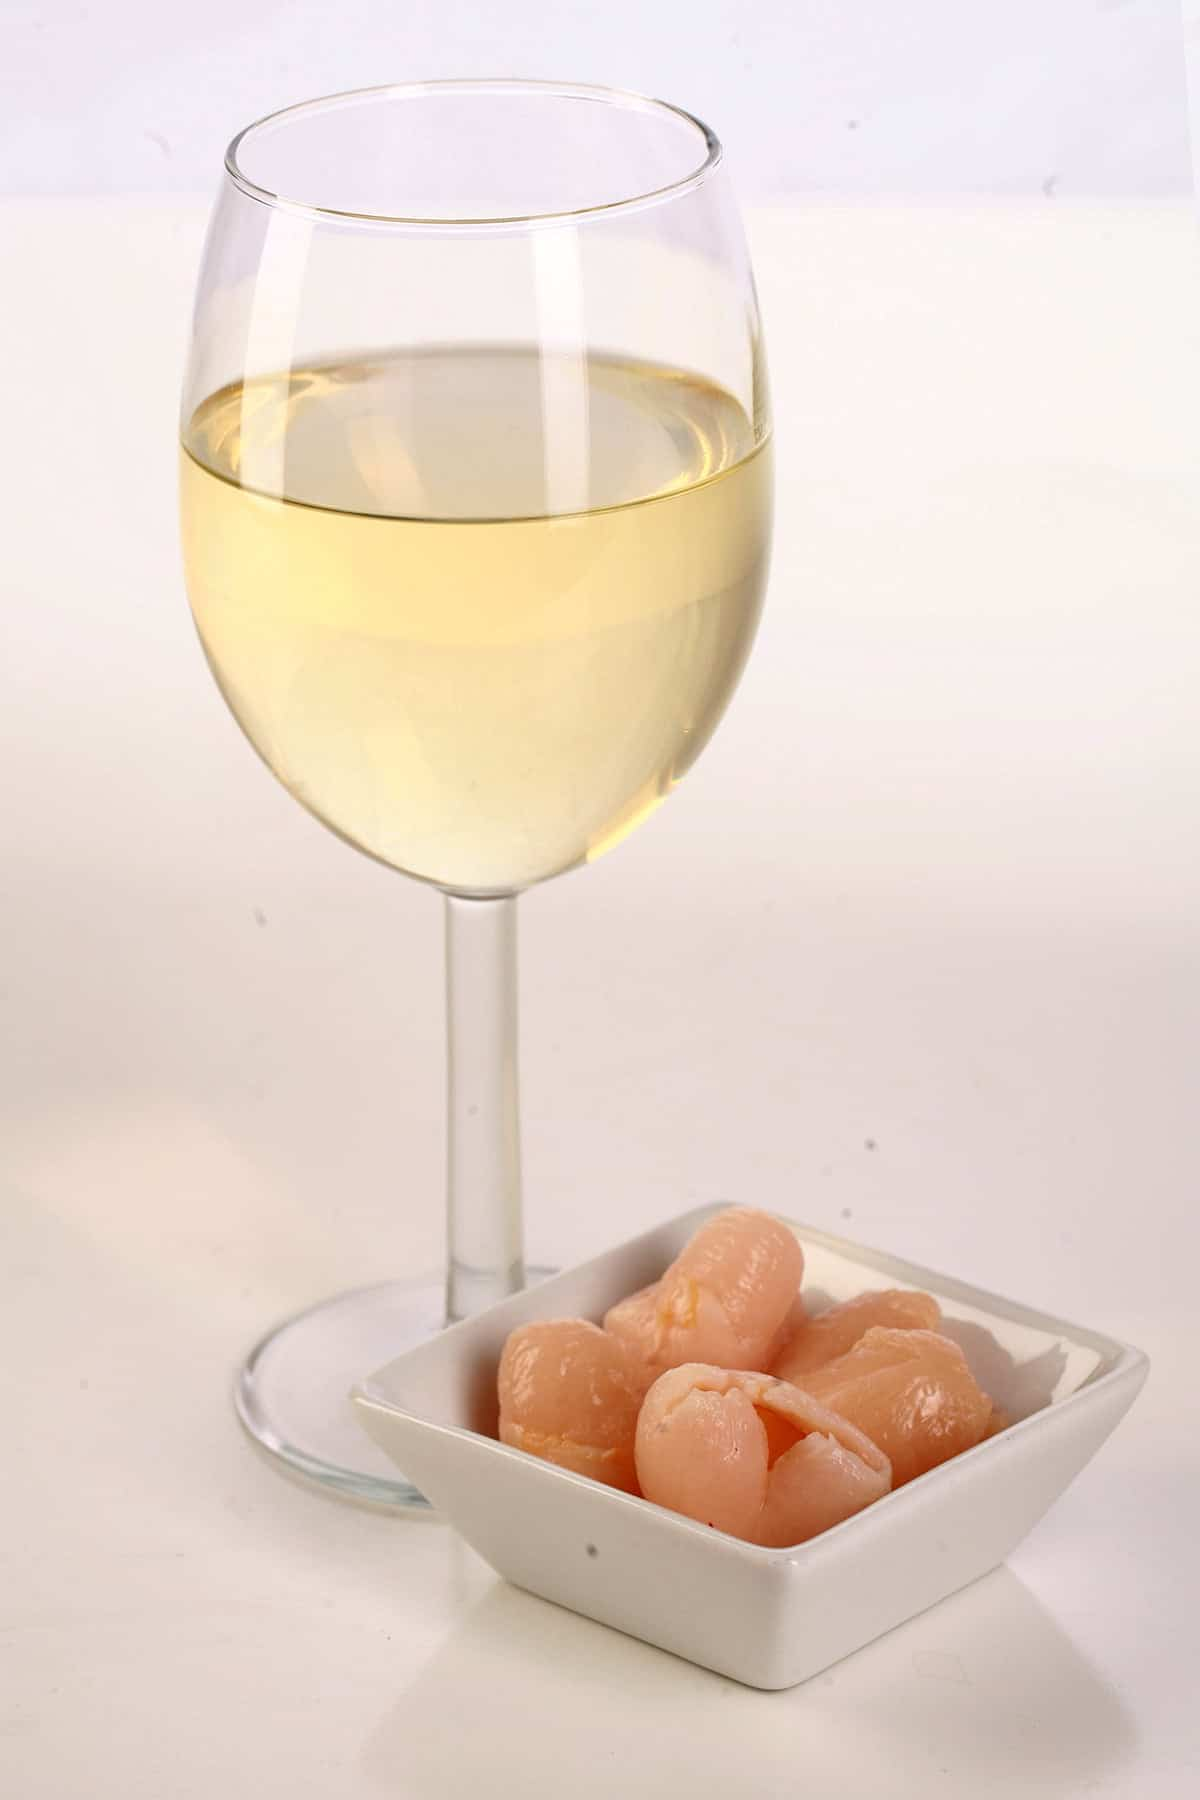 A glass of white wine  - made from this lychee wine recipe - is pictured next to a small bowl of lychee fruit.